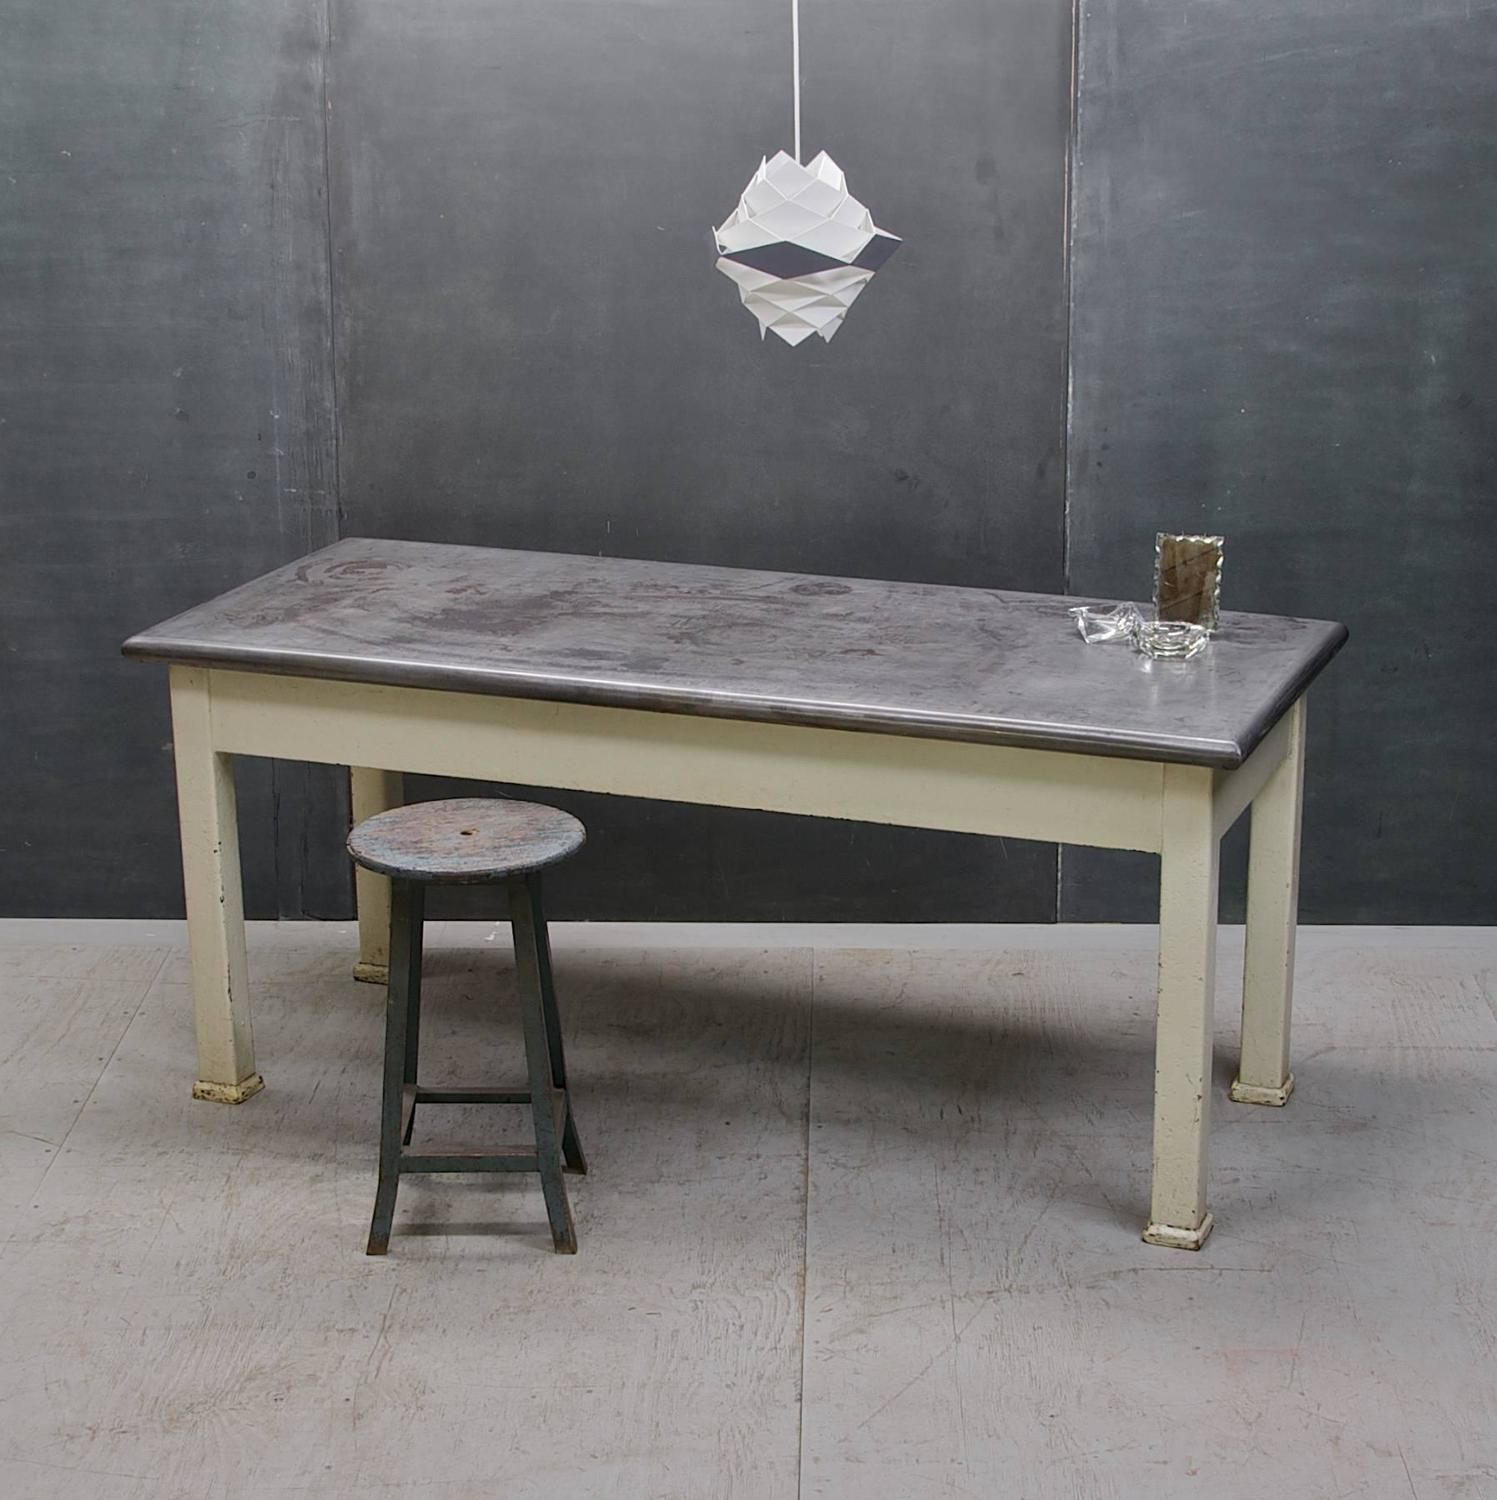 Early century steel clad industrial factory kitchen rectory table early century steel clad industrial factory kitchen rectory table workwithnaturefo